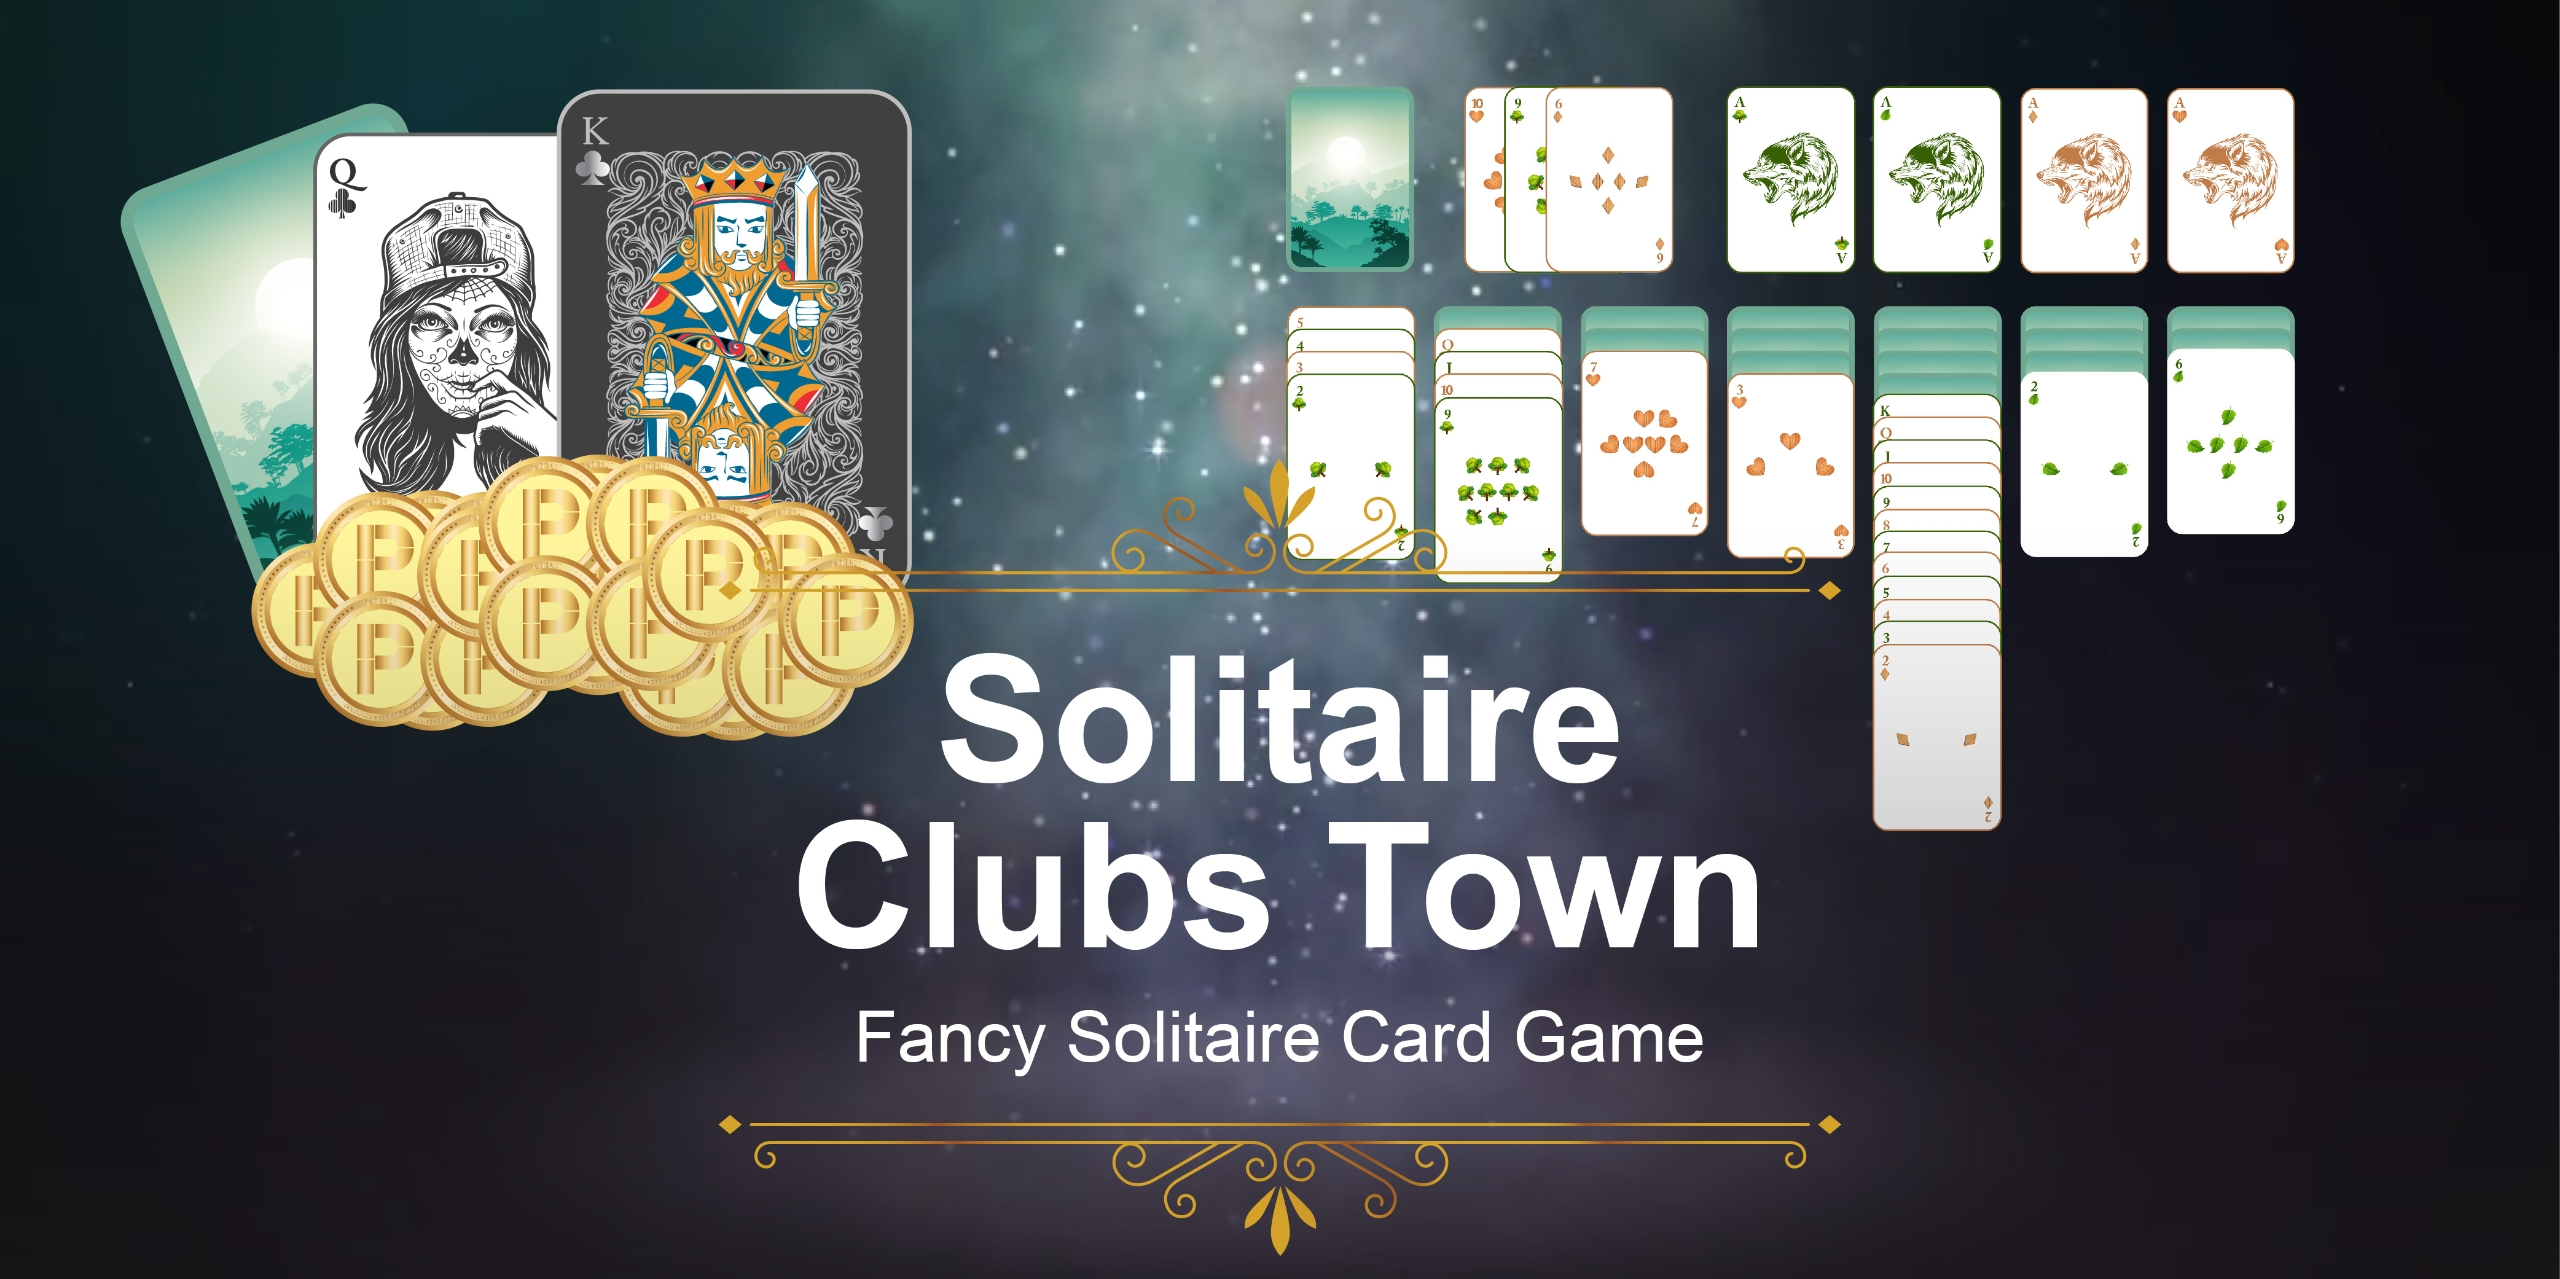 Solitaire Clubs Town - Fancy Solitaire Card Game (@solitaireclubs) Cover Image